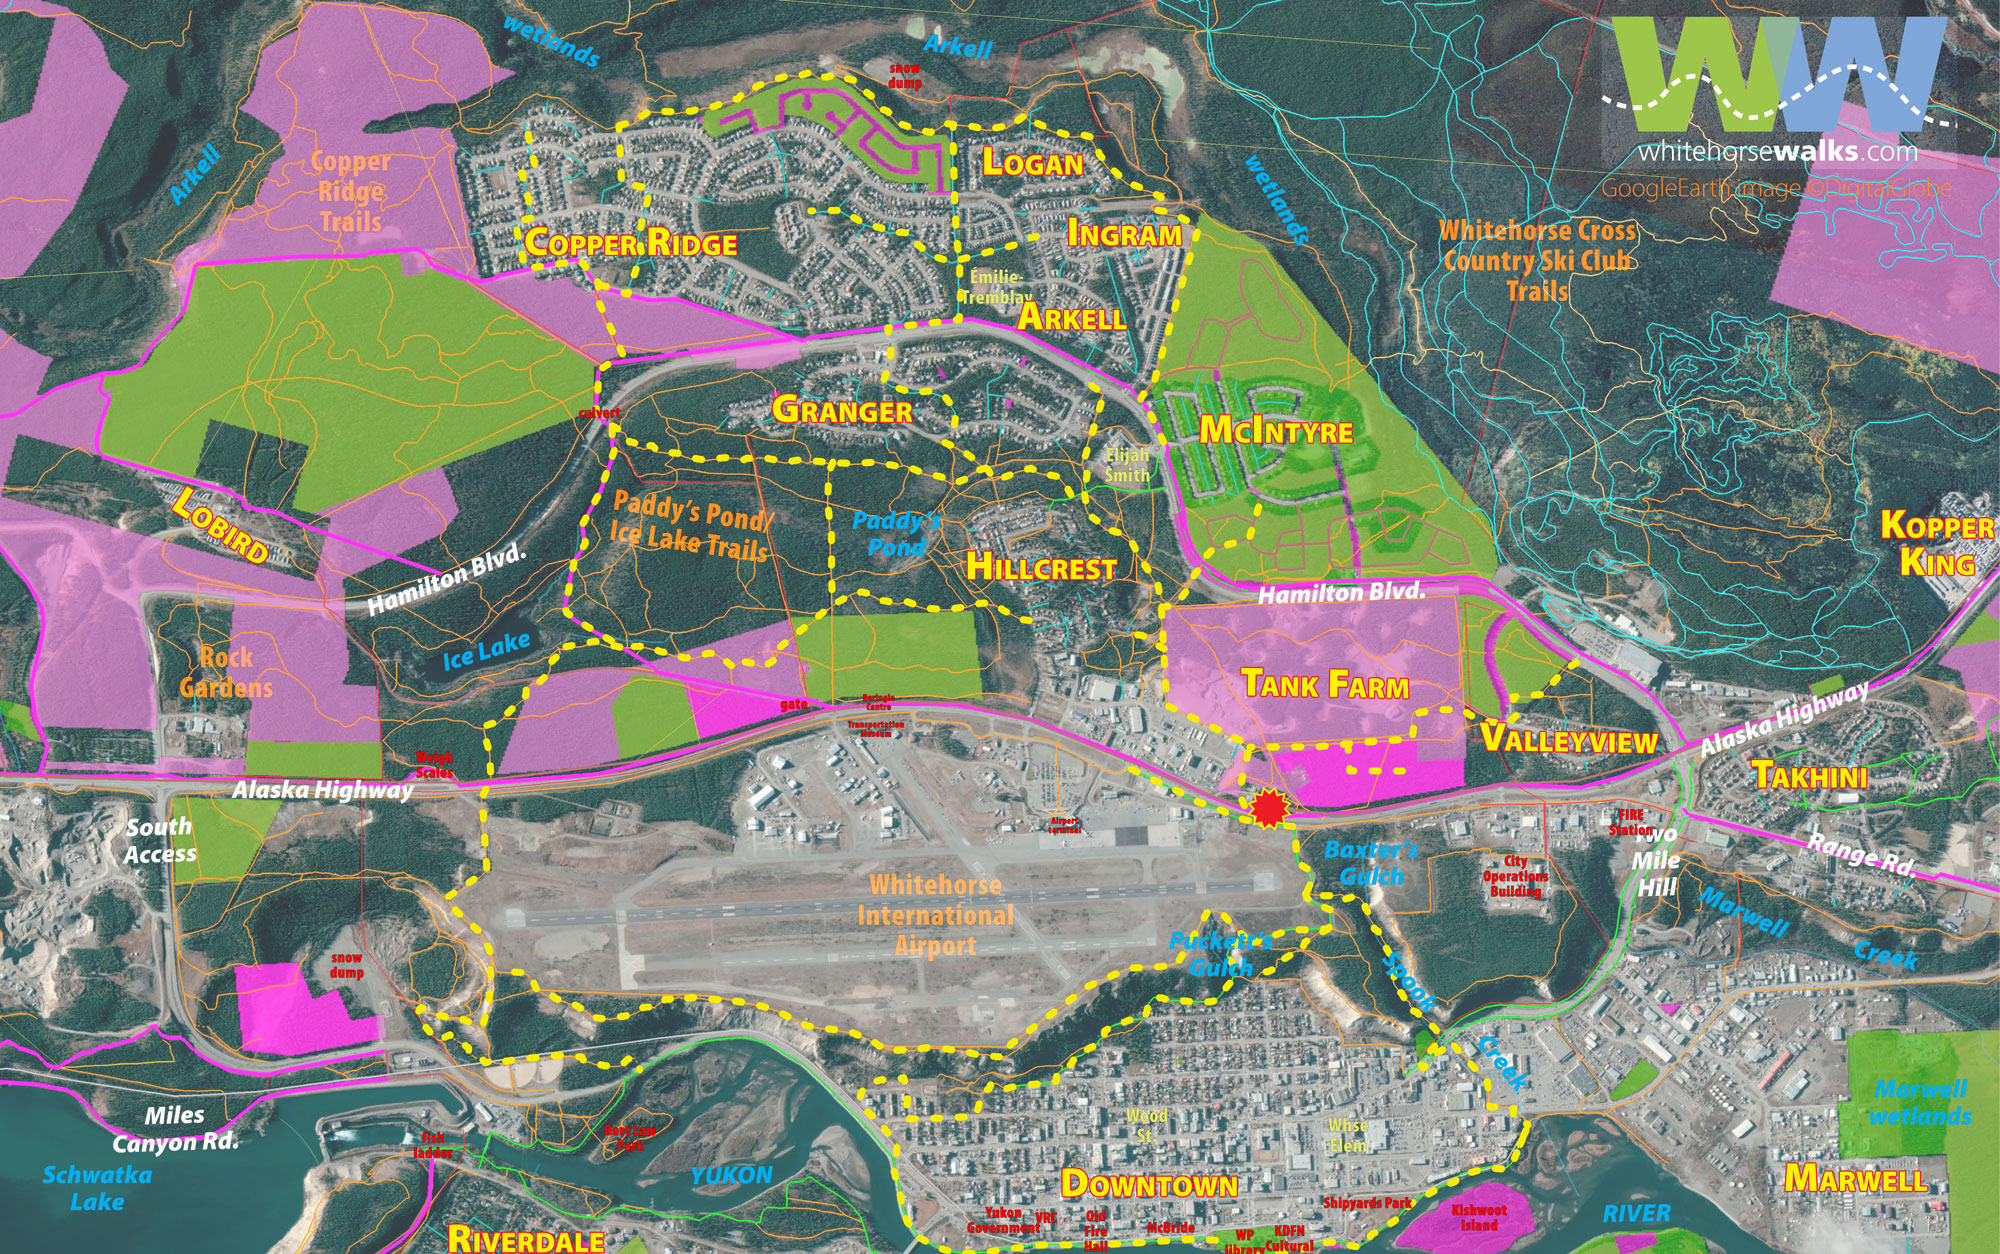 Overview Map - Whitehorse Walks